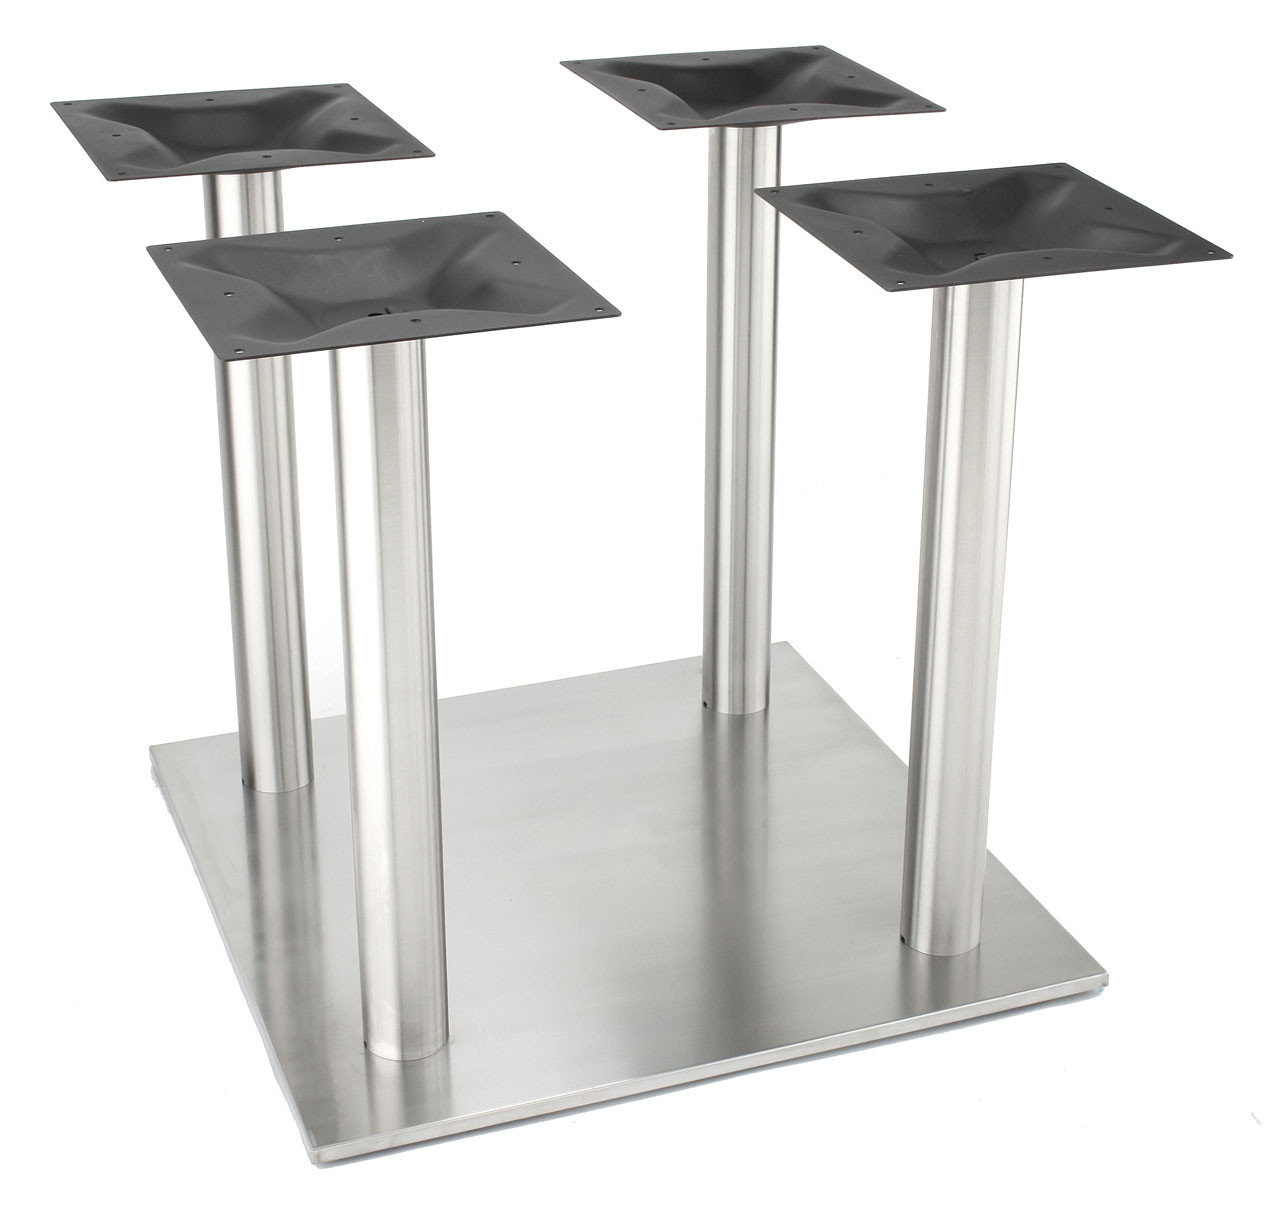 "Nikai Stainless steel 30"" square style pedestal table base, 4 x 3.0"" square columns, Dining Height"